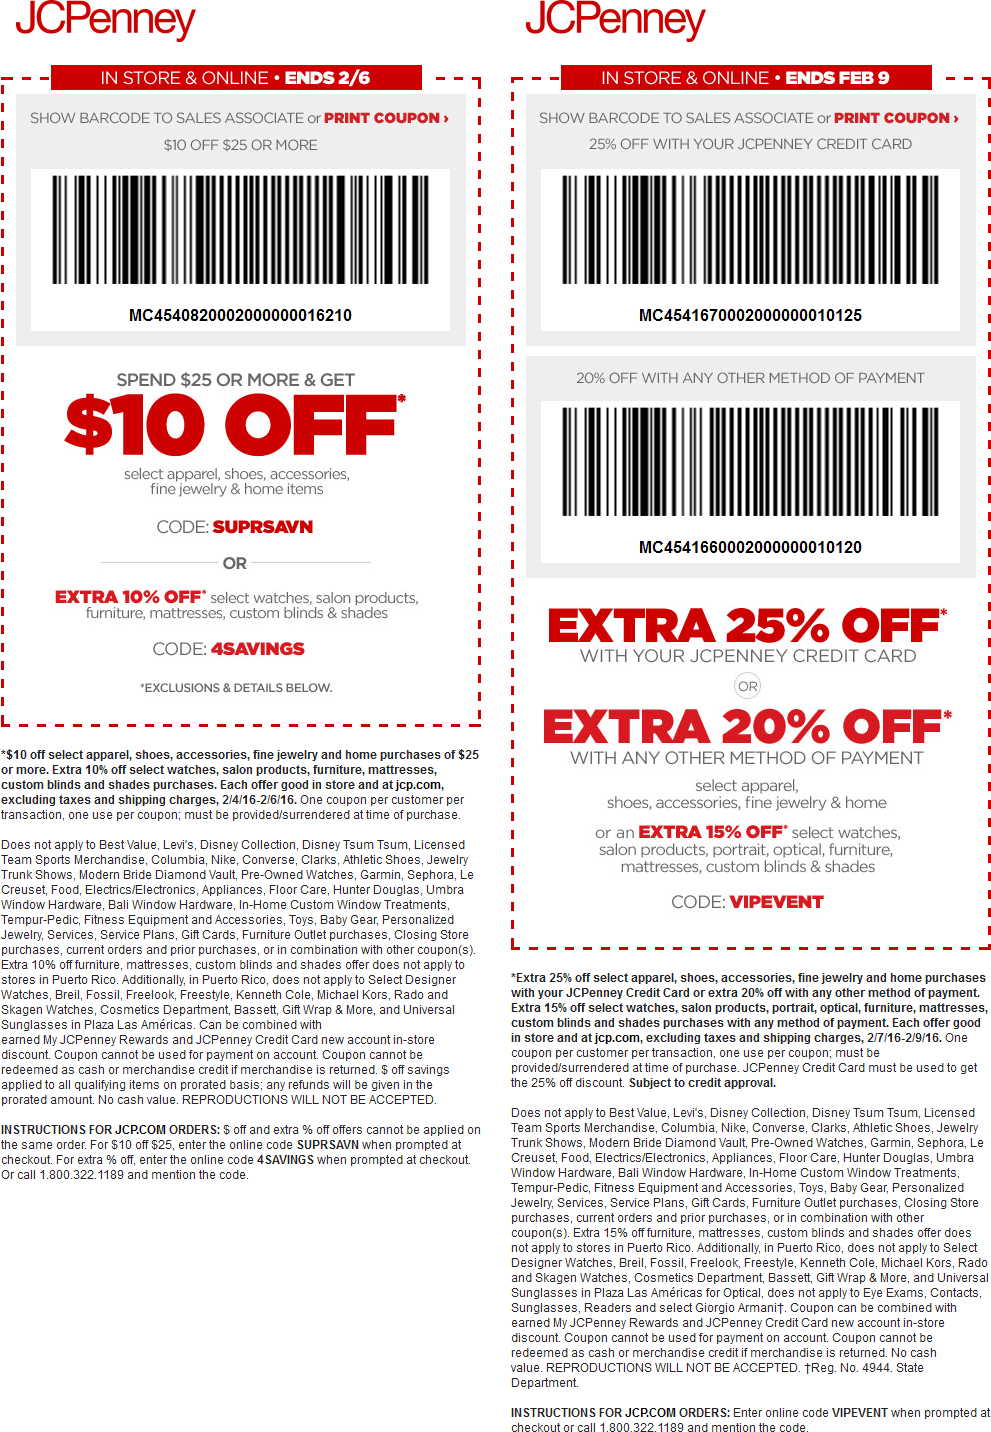 JCPenney Coupon March 2017 $10 off $25 & more at JCPenney, or online via promo code SUPRSAVN